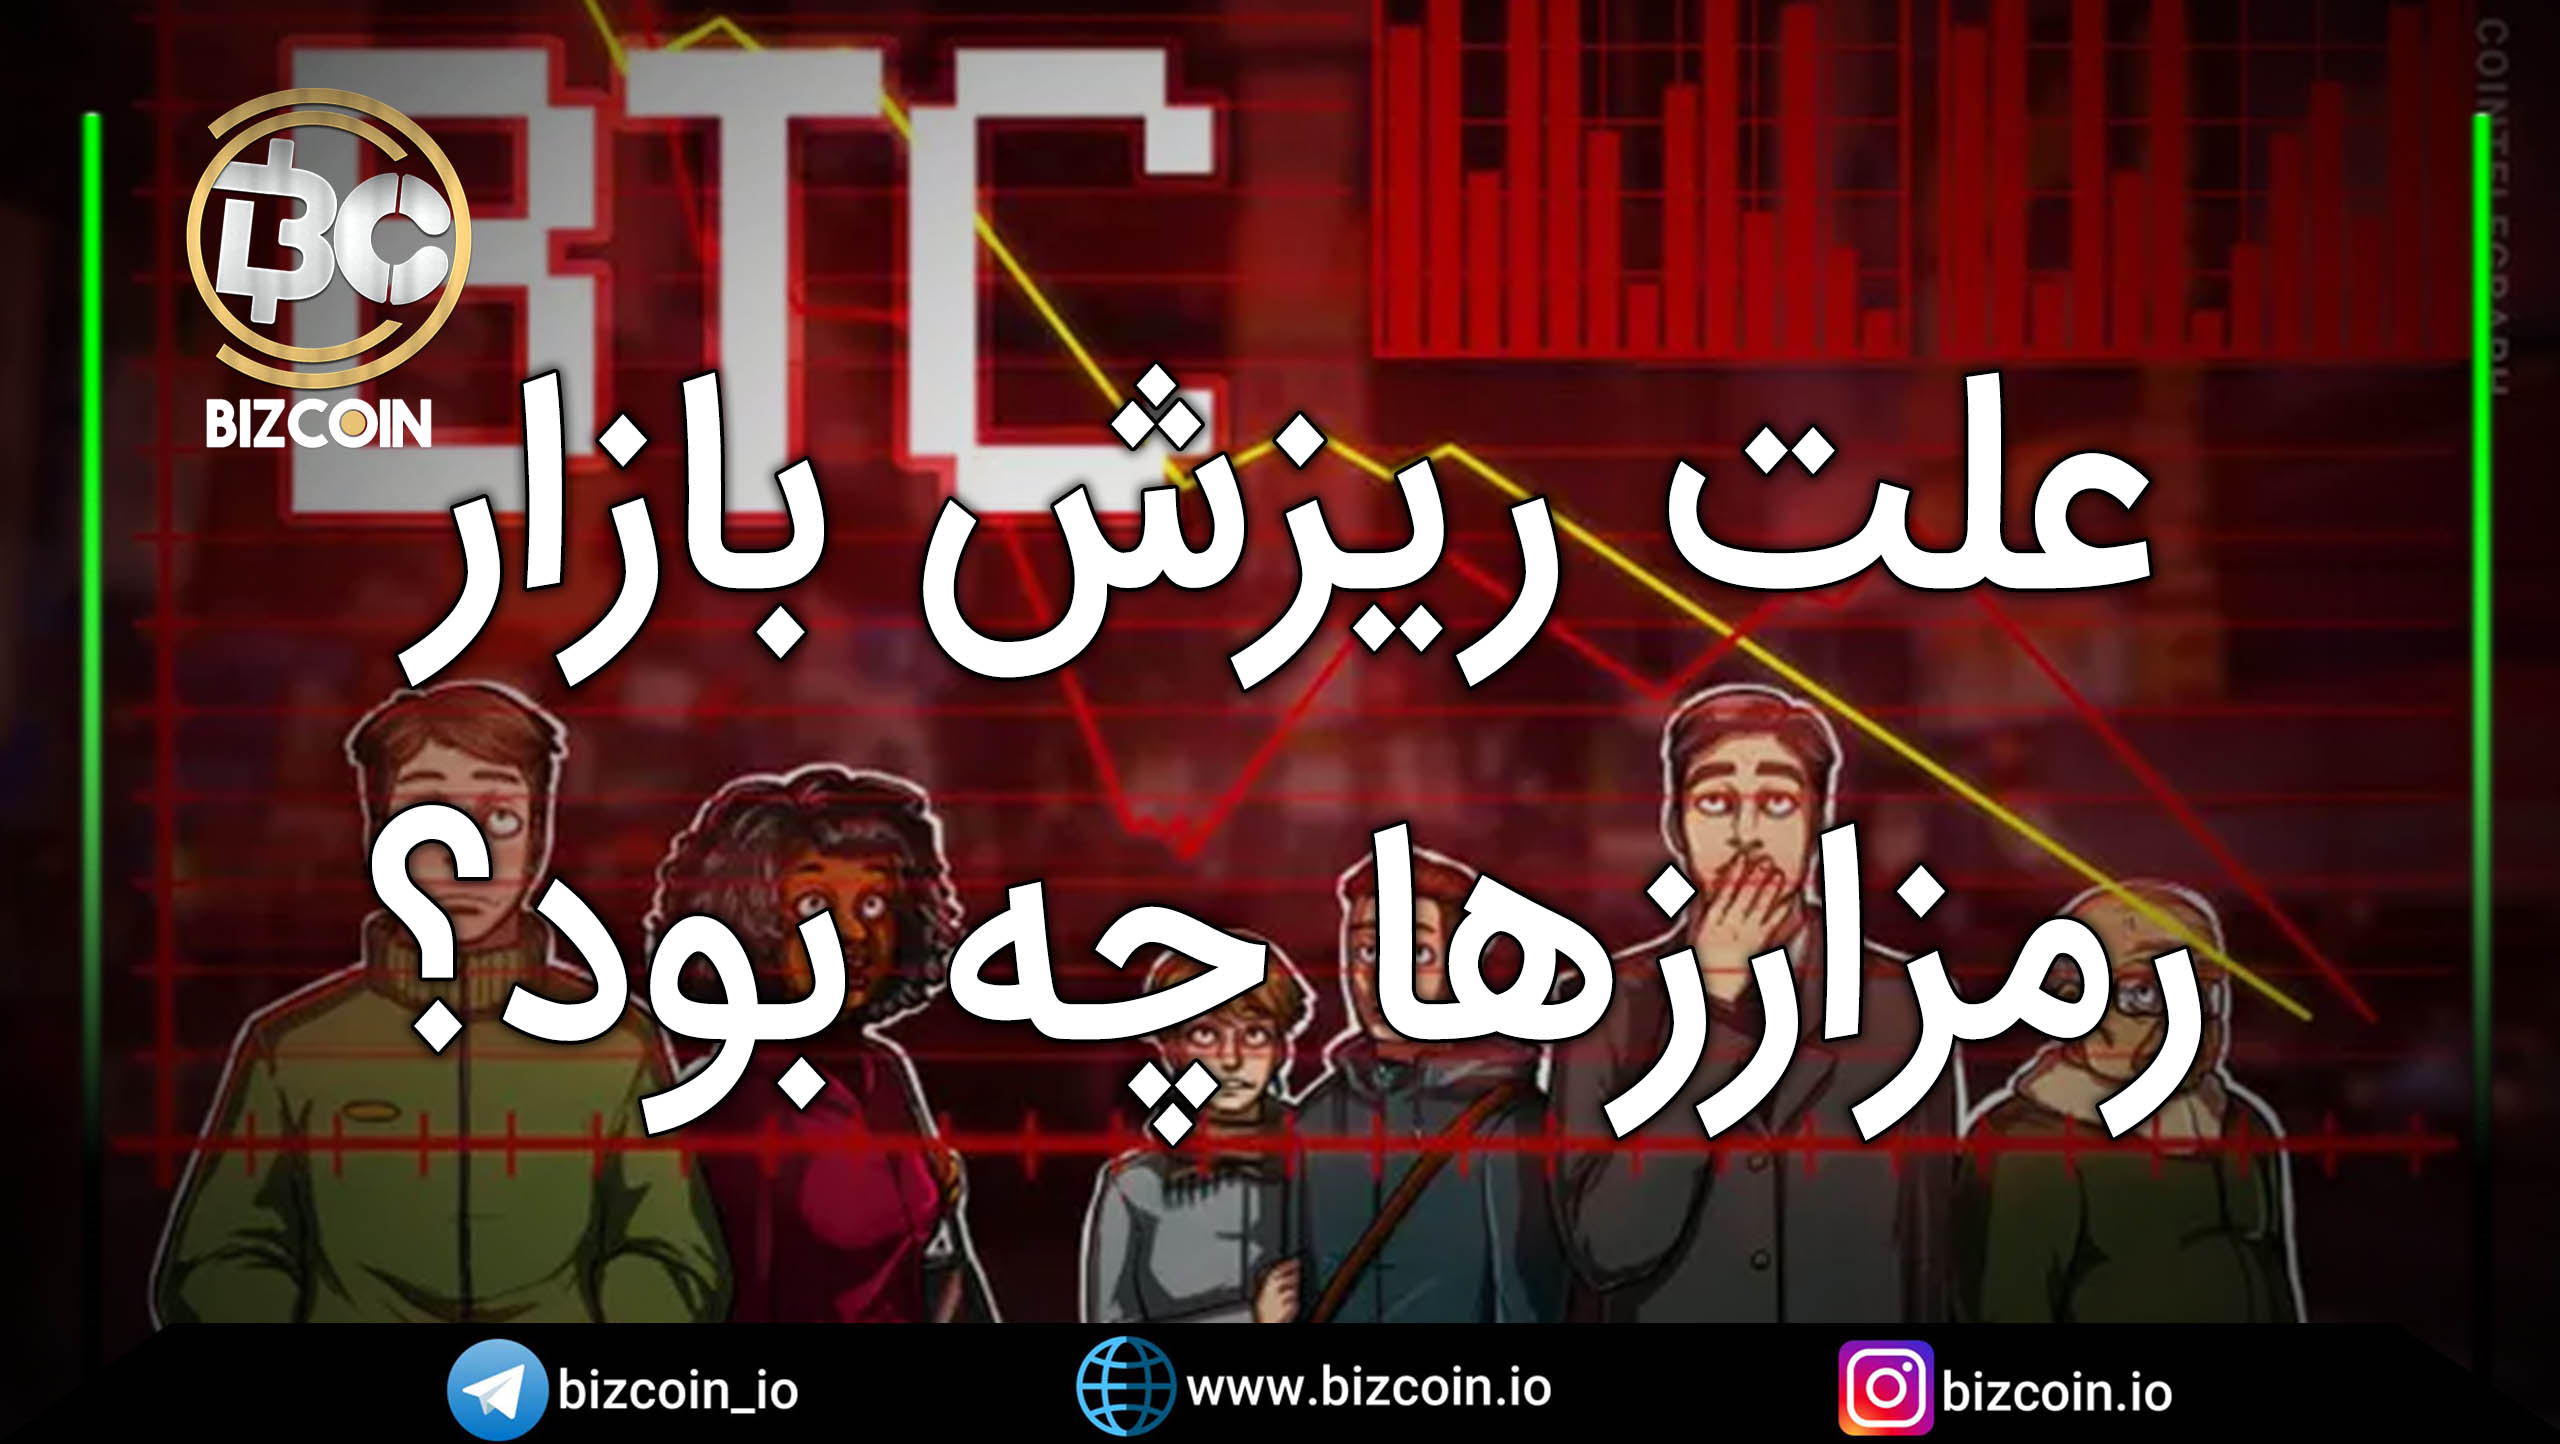 What was the reason for the collapse of the cryptocurrency market علت ریزش بازار رمزارزها چه بود؟